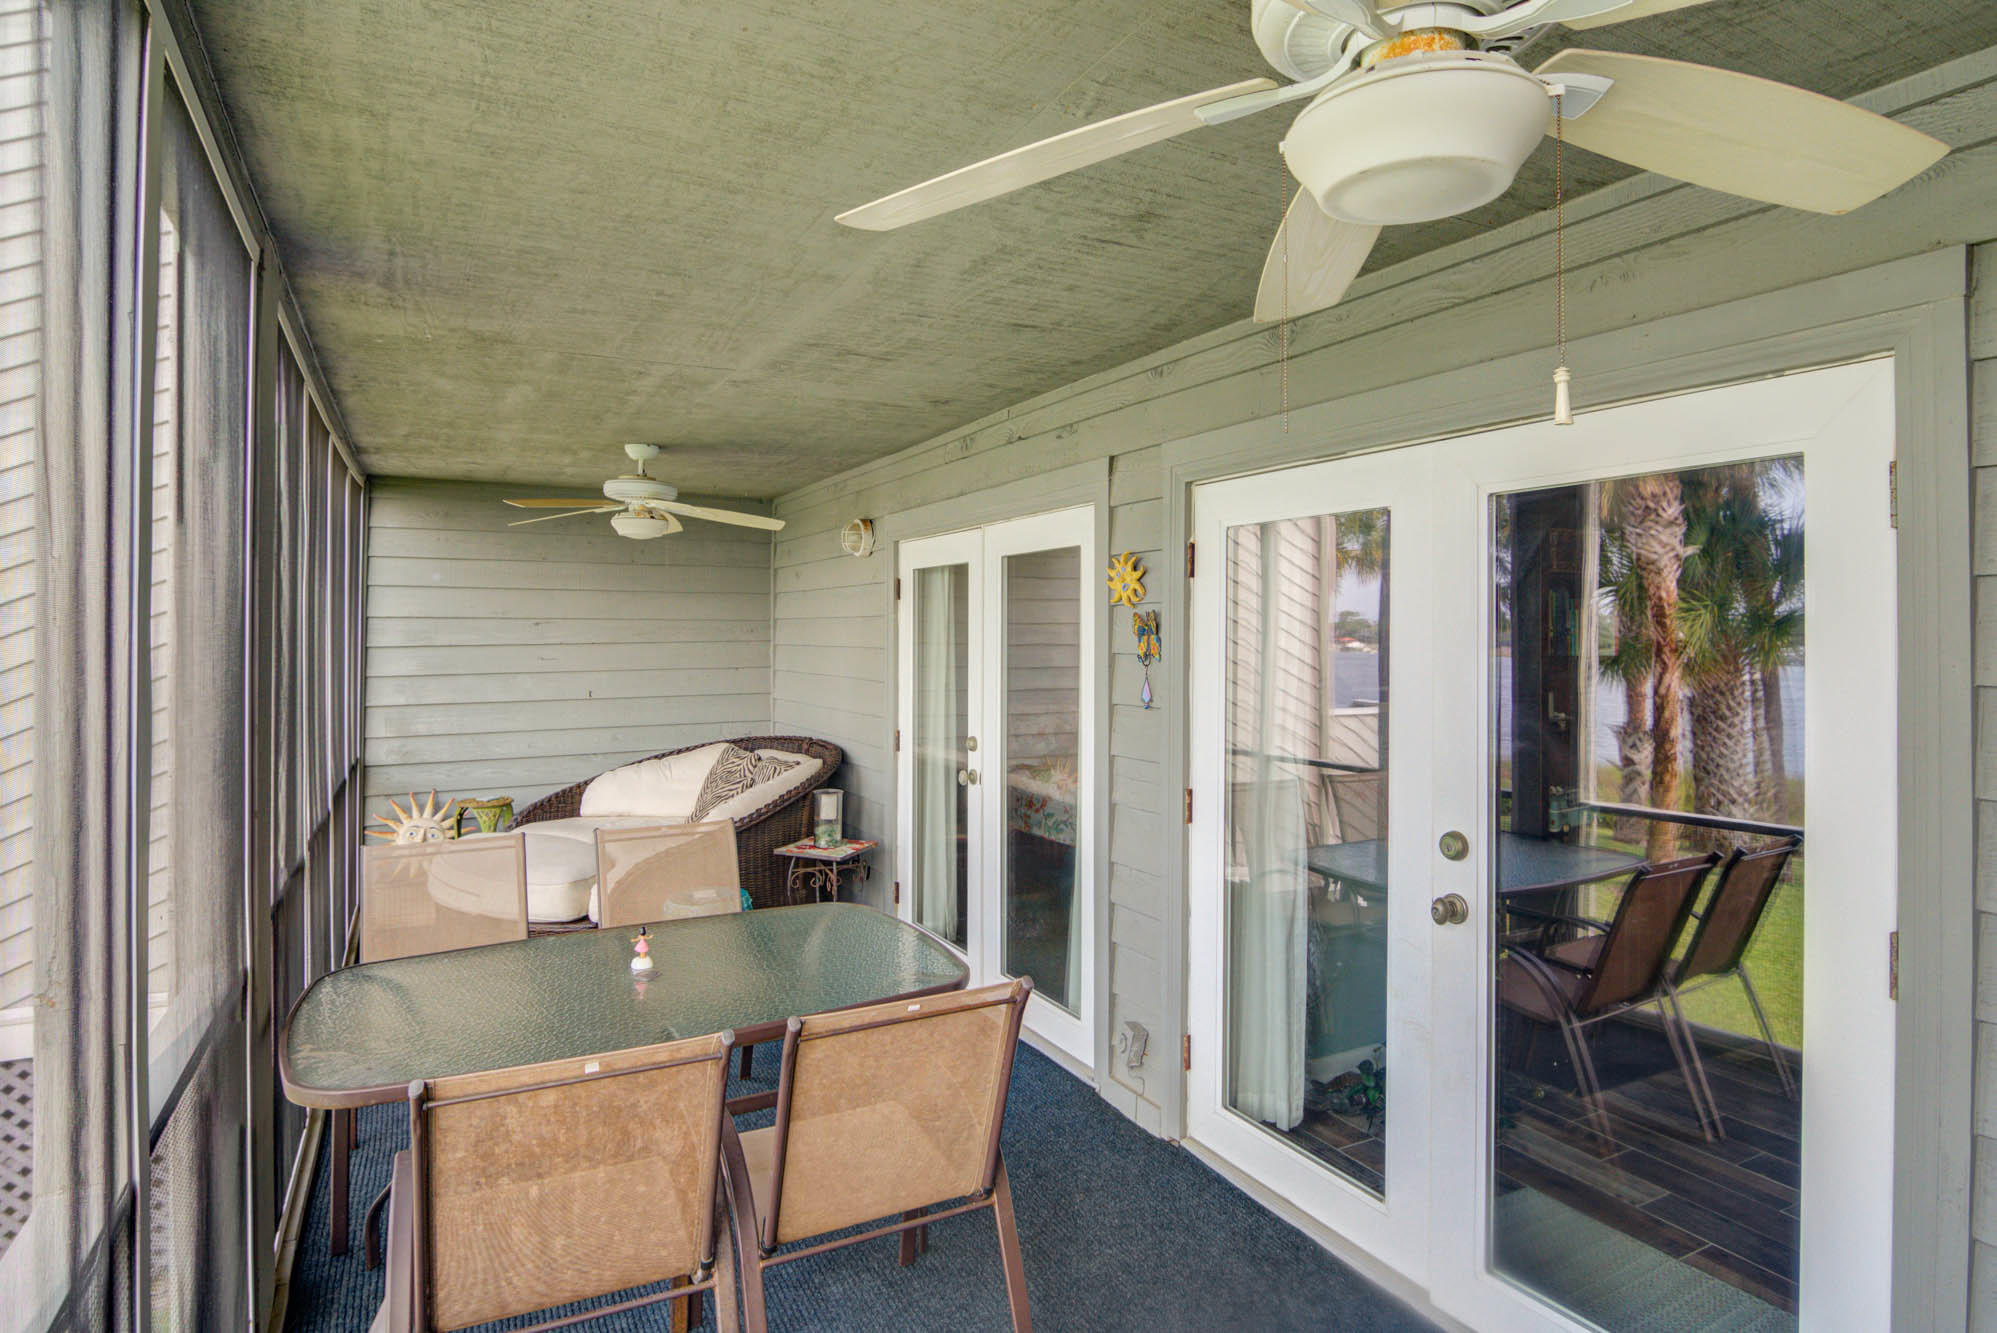 Mariners Cay Homes For Sale - 19 Mariners Cay, Folly Beach, SC - 7